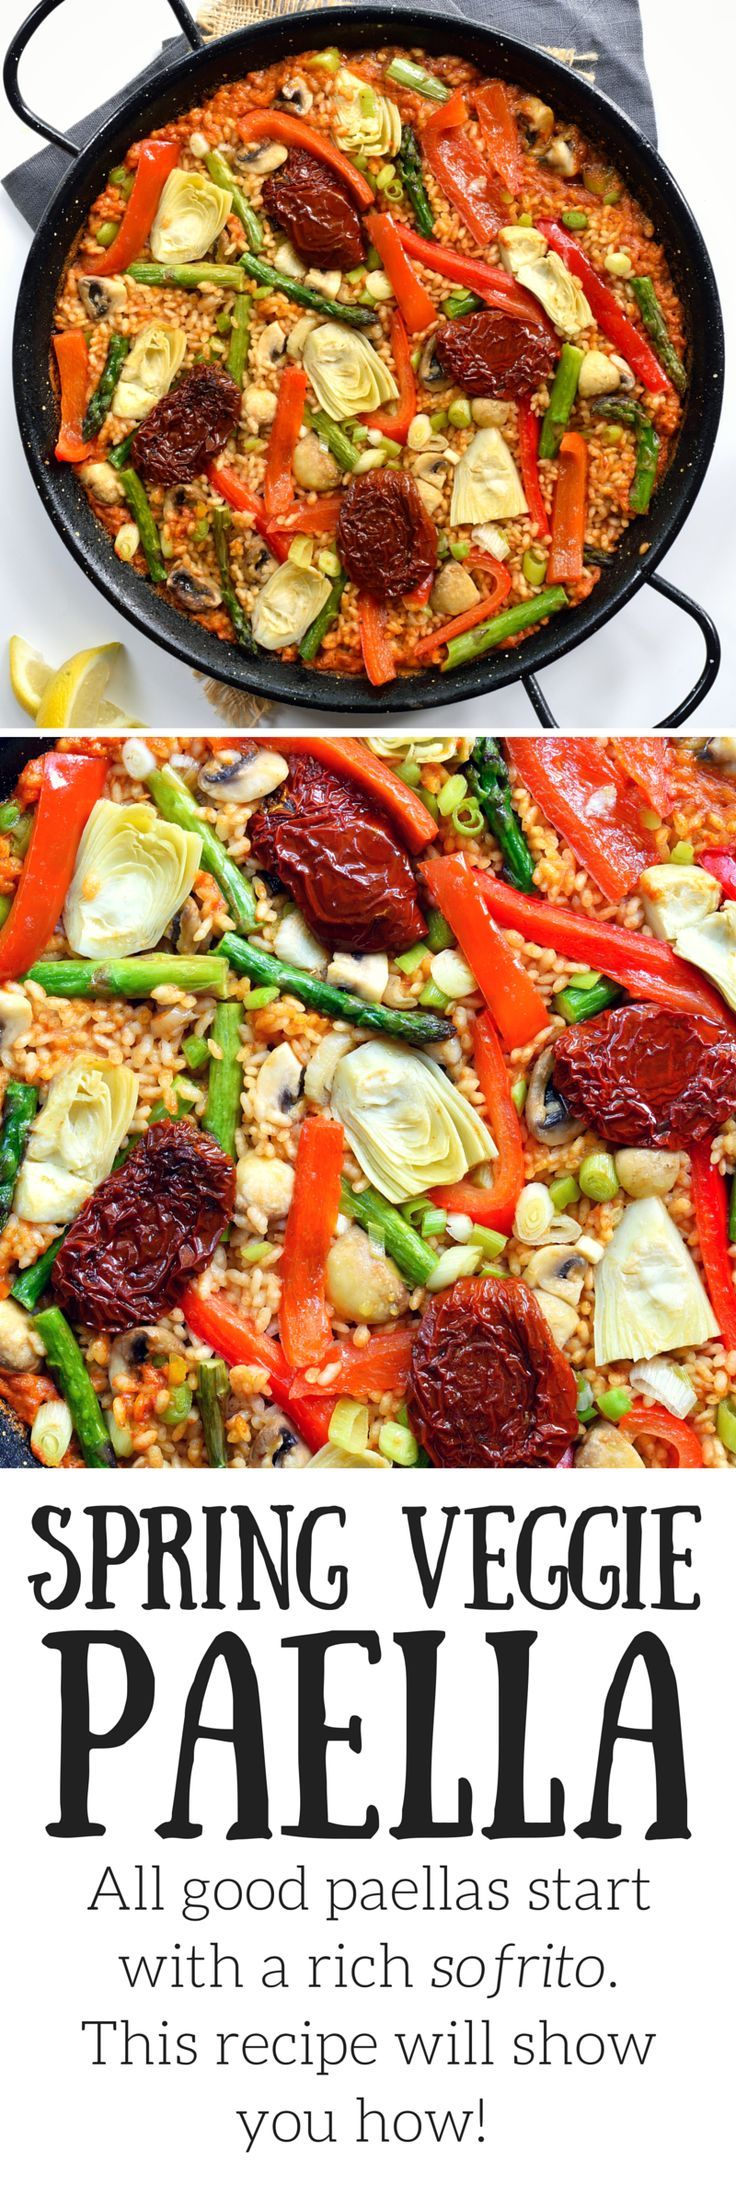 The Spanish rice dish paella is veganized with fresh spring vegetables simmered in a rich, flavourful sauce.